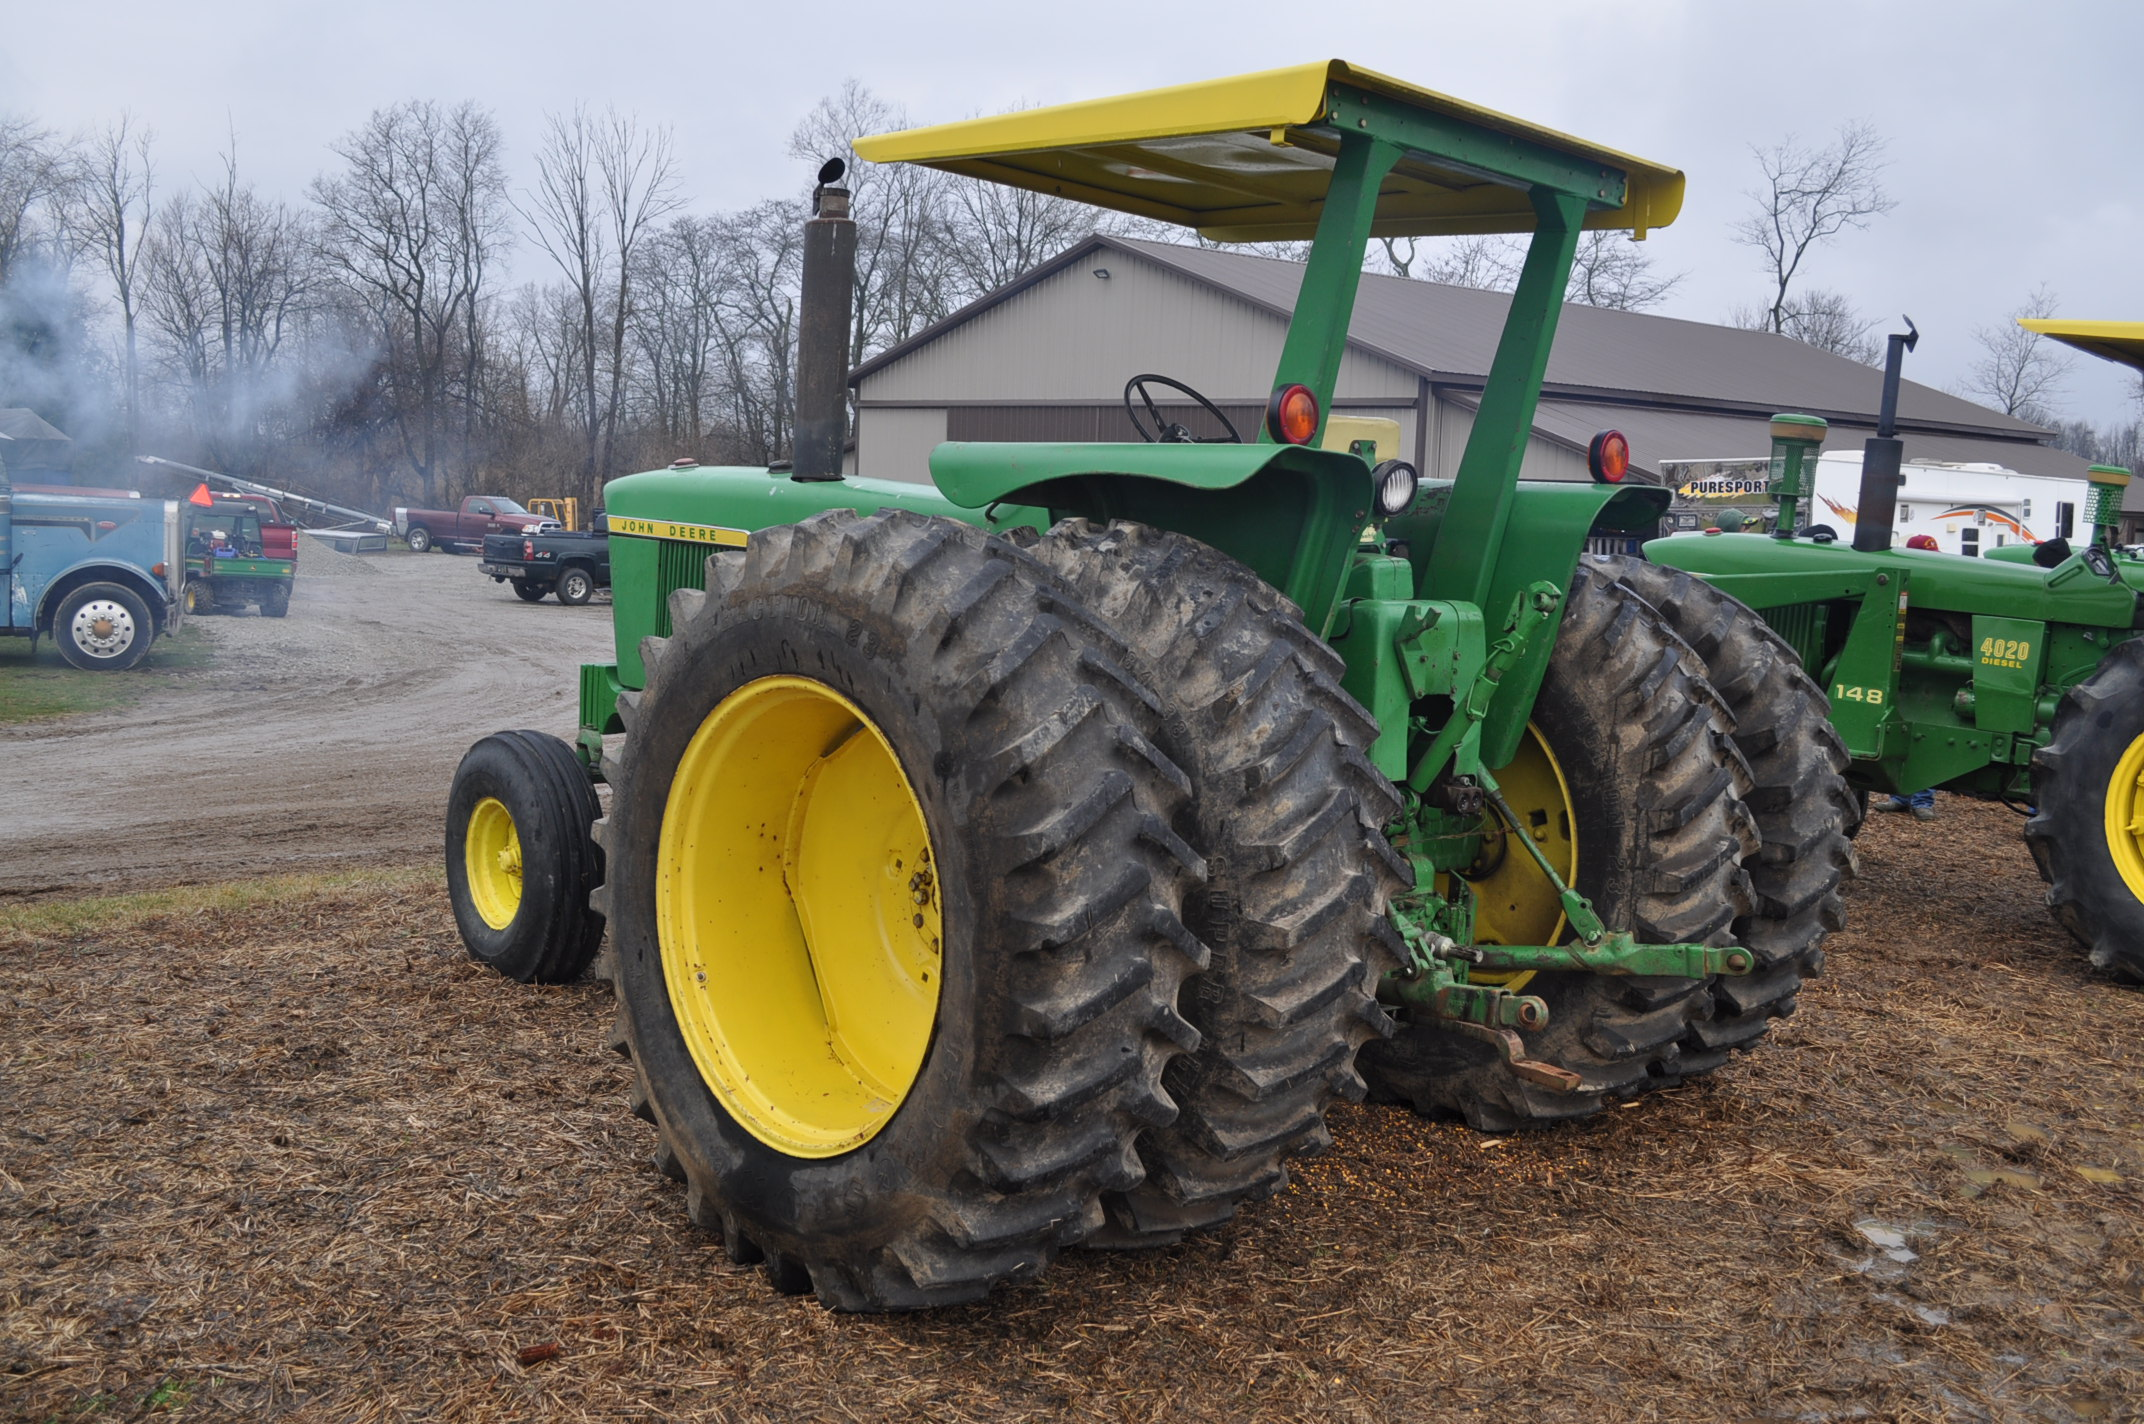 John Deere 4320 tractor, diesel, 18.4-38 duals, 10.00-16 wide front, Syncro, 2 hyd remotes, 540/1000 - Image 2 of 20